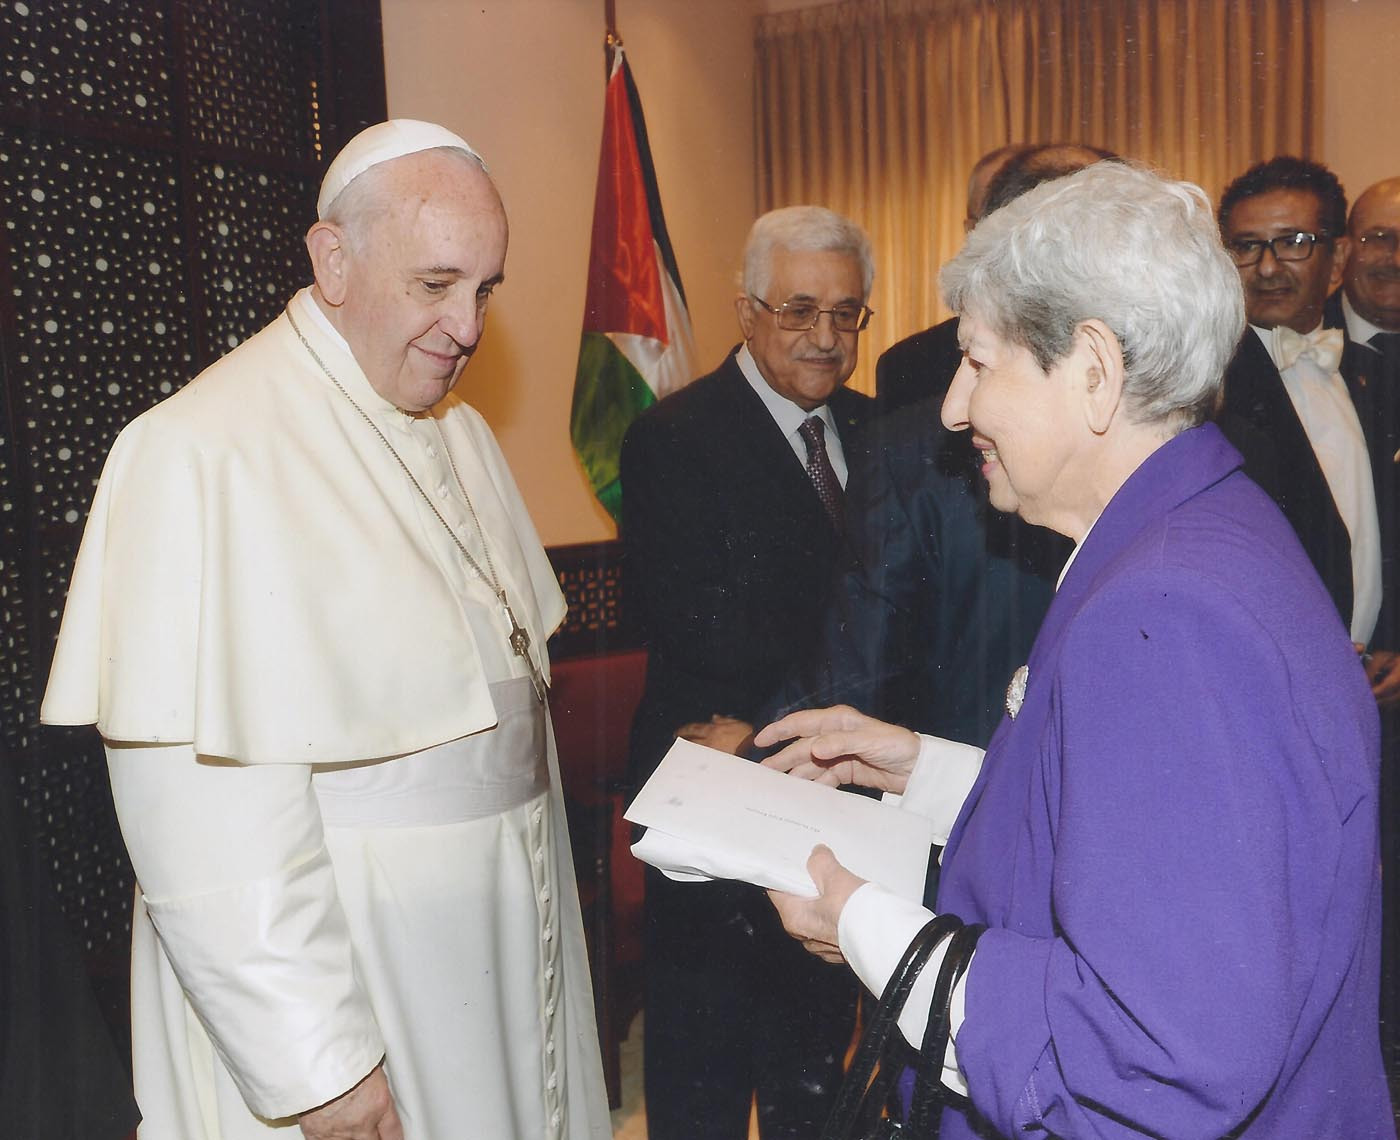 Samia-presenting-Pope-Frances-her-book-during-his-visit-to-Beth